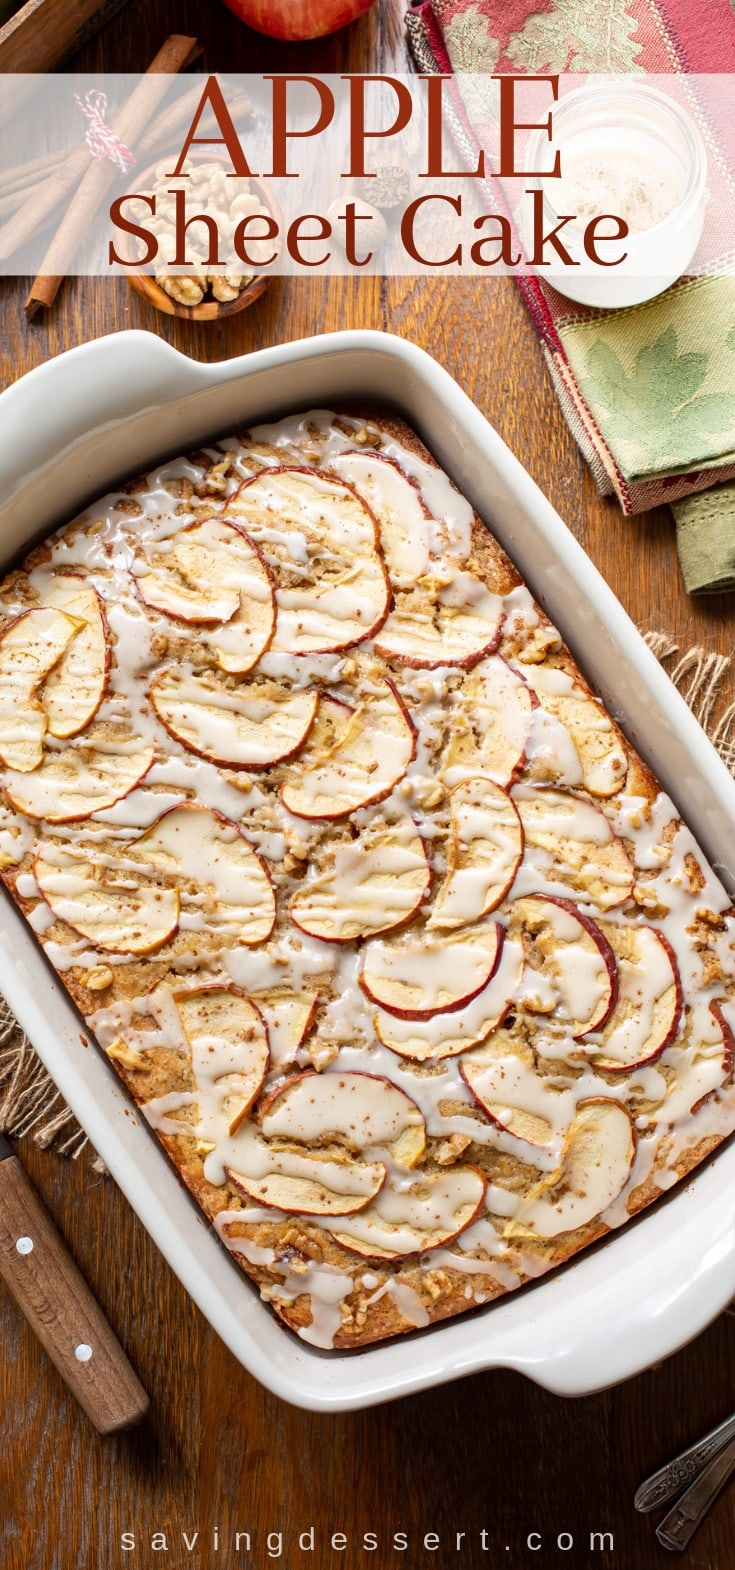 An overhead view of an apple sheet cake topped with sliced apples and walnuts, drizzled with a simple icing and a sprinkle of cinnamon